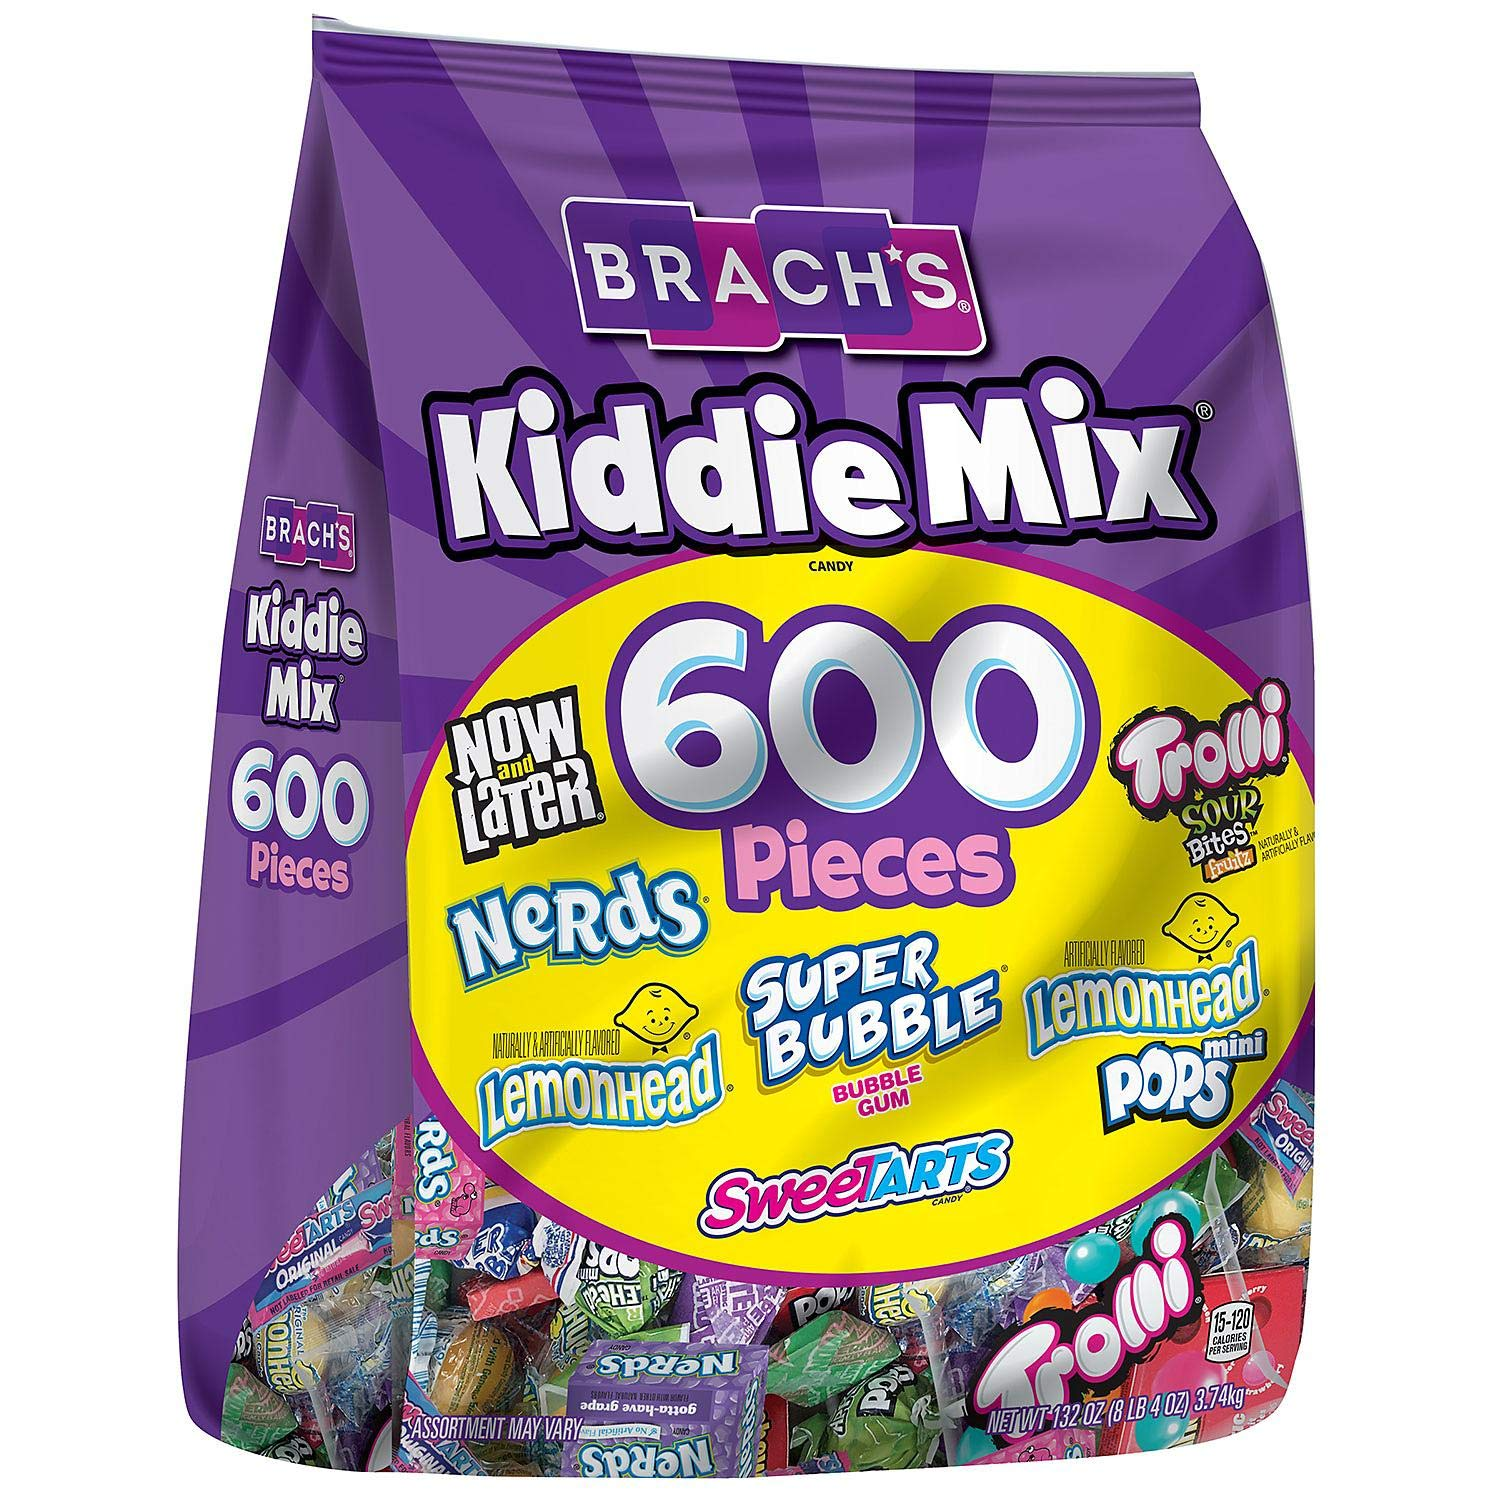 Seven delicious pieces of candy to choose from Brach's Kiddie Mix by Brach's